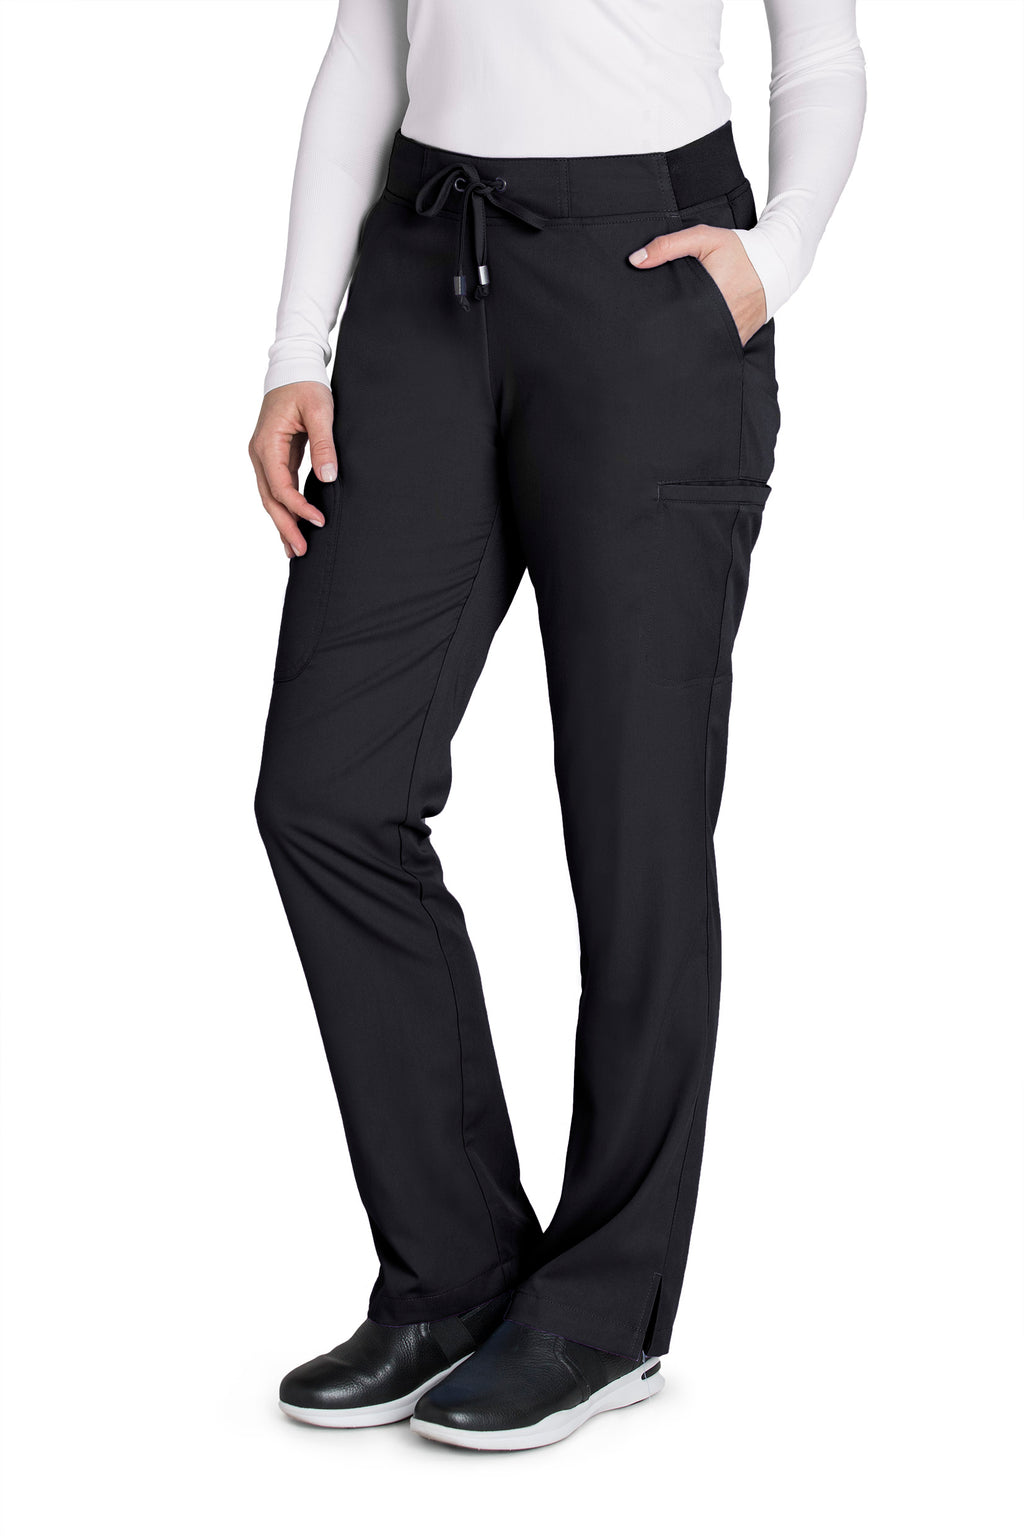 Grey's Anatomy 4277 6-Pocket Pant